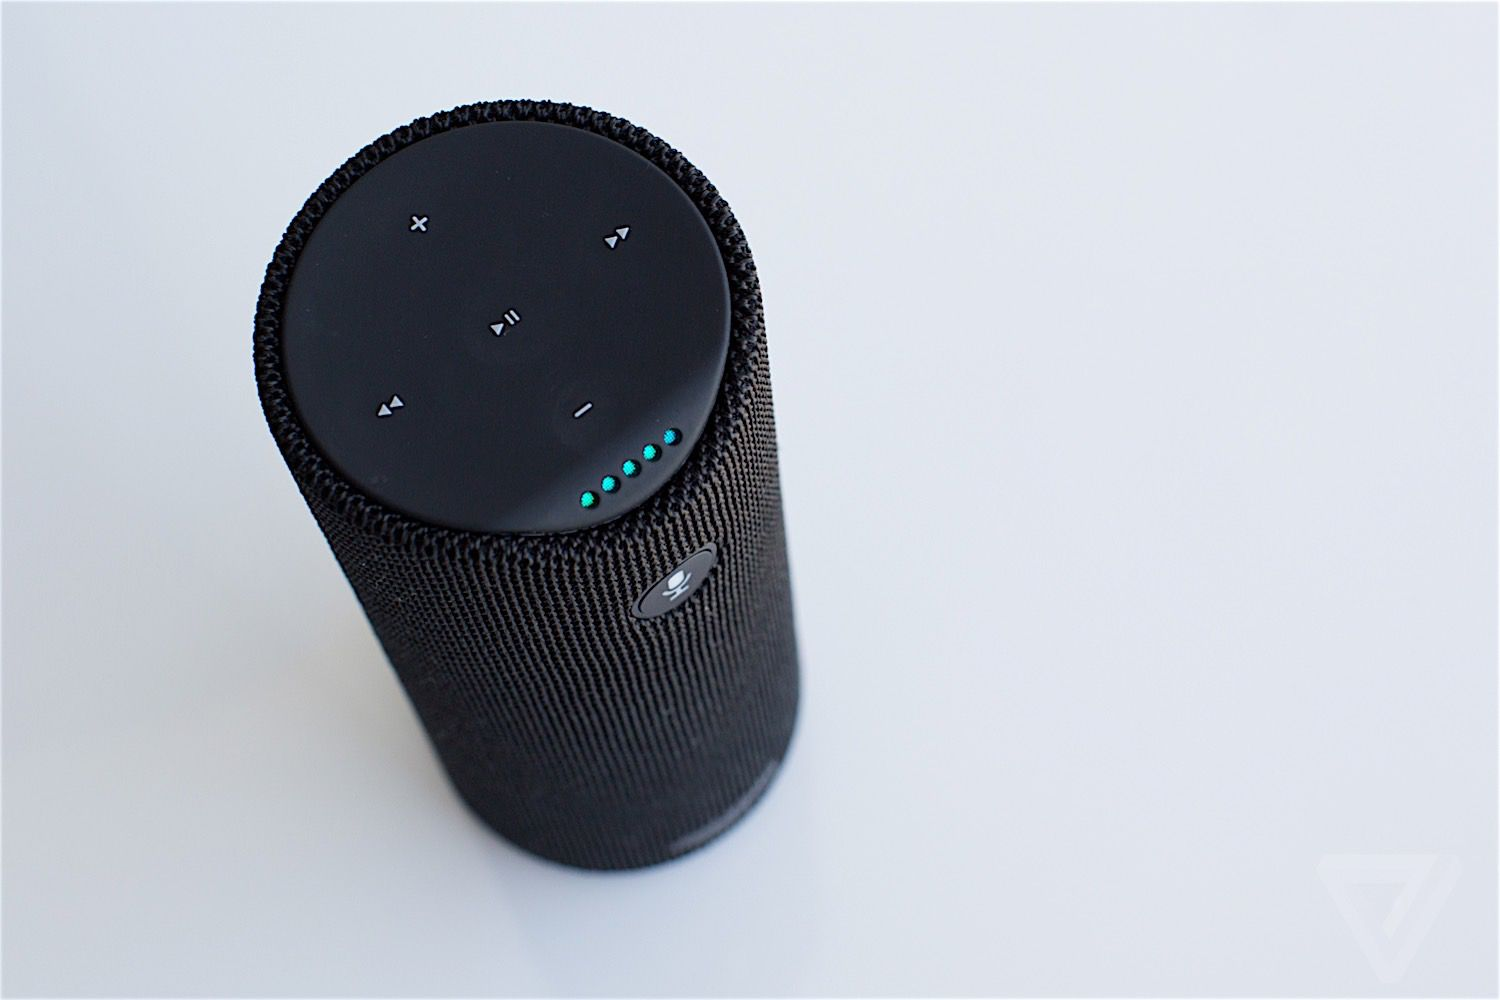 Amazon Tap review: Alexa's magic is gone | The Verge